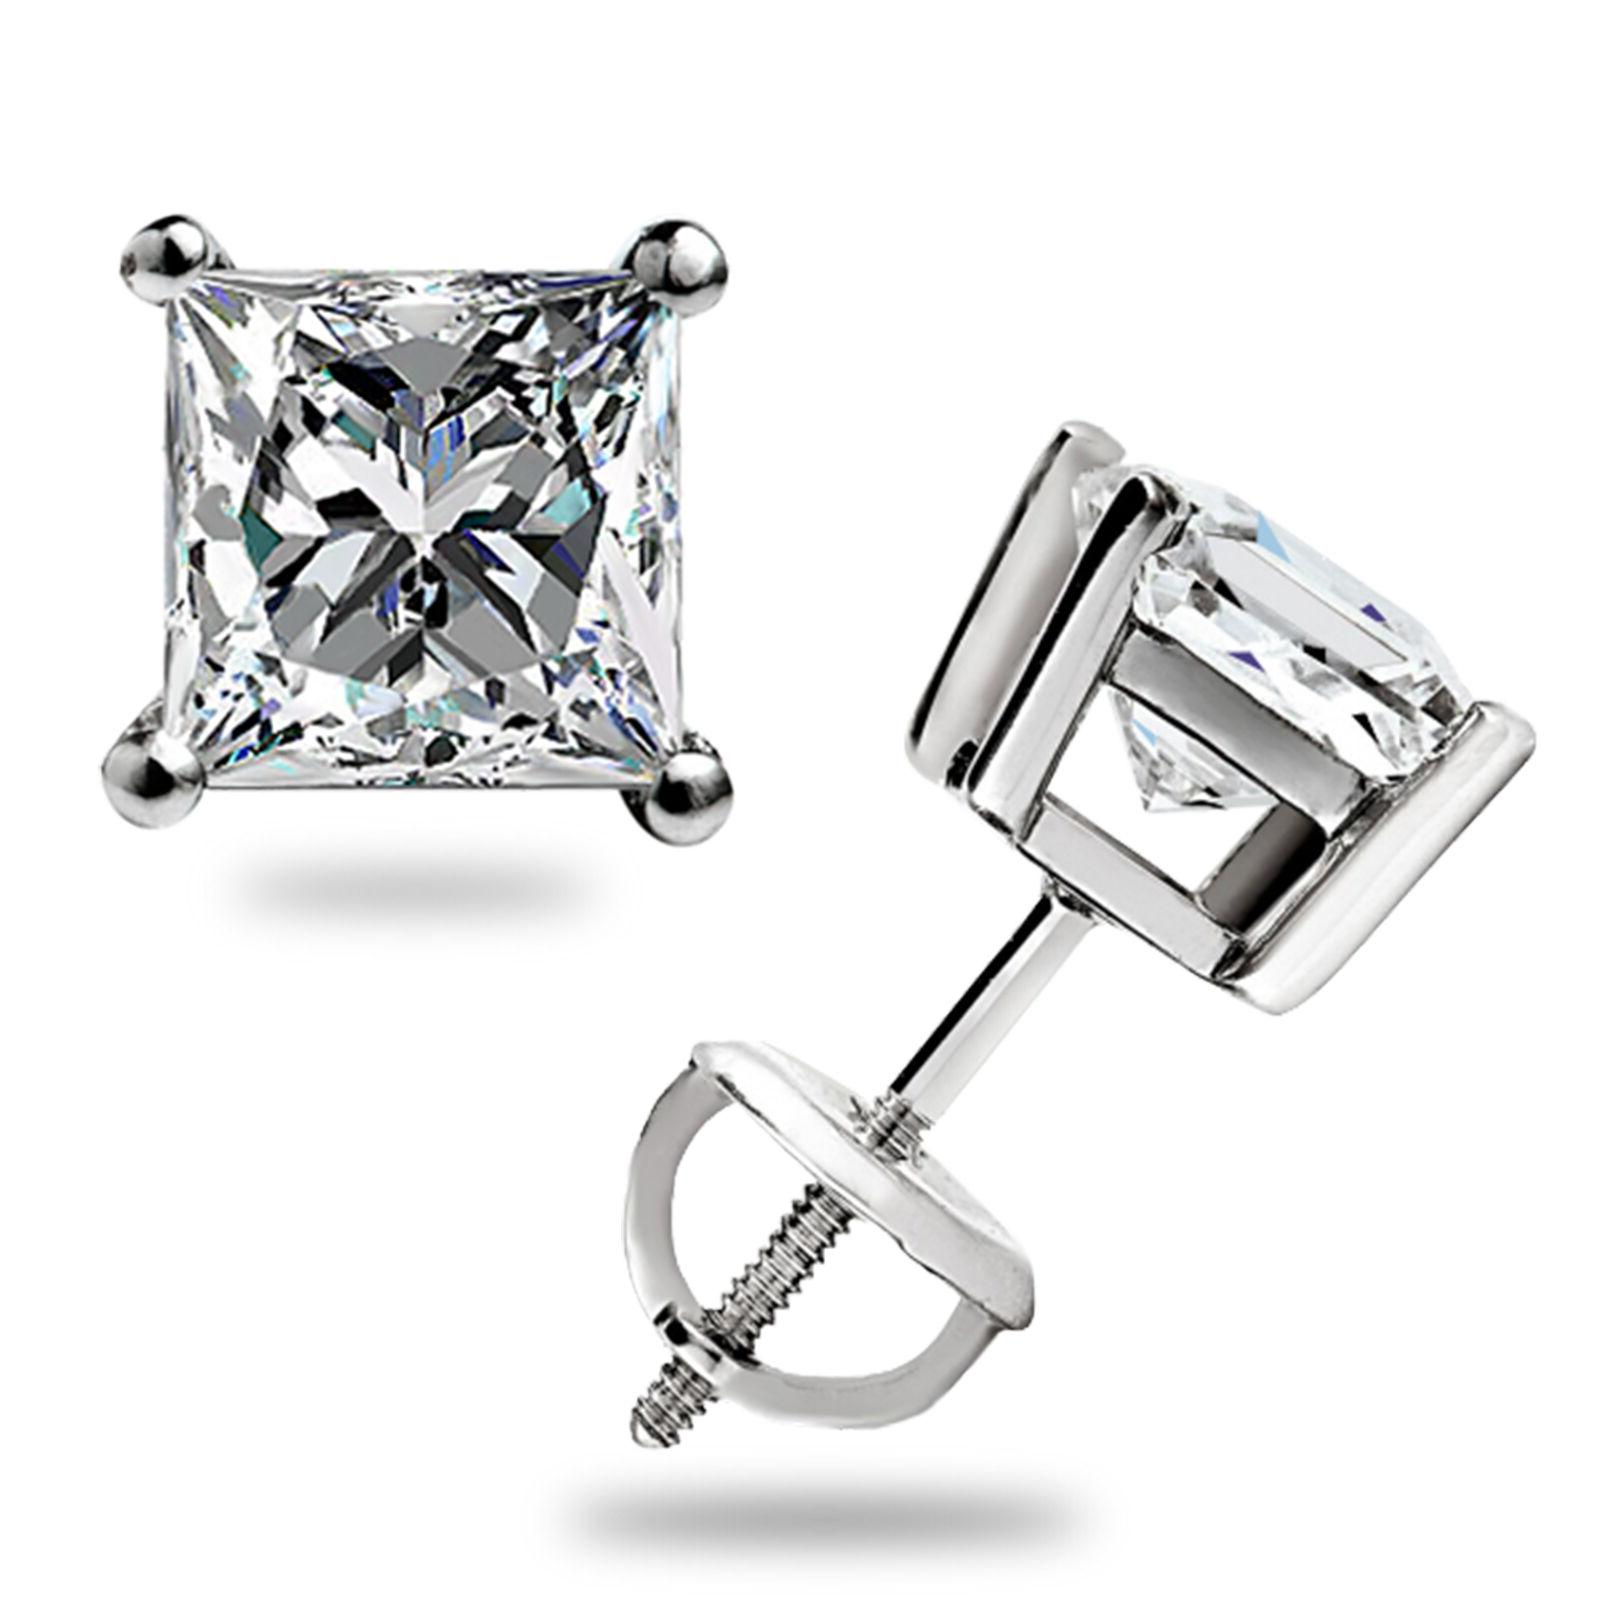 2 ct Princess Cut Solitaire Stud Earrings Solid 14k White Go